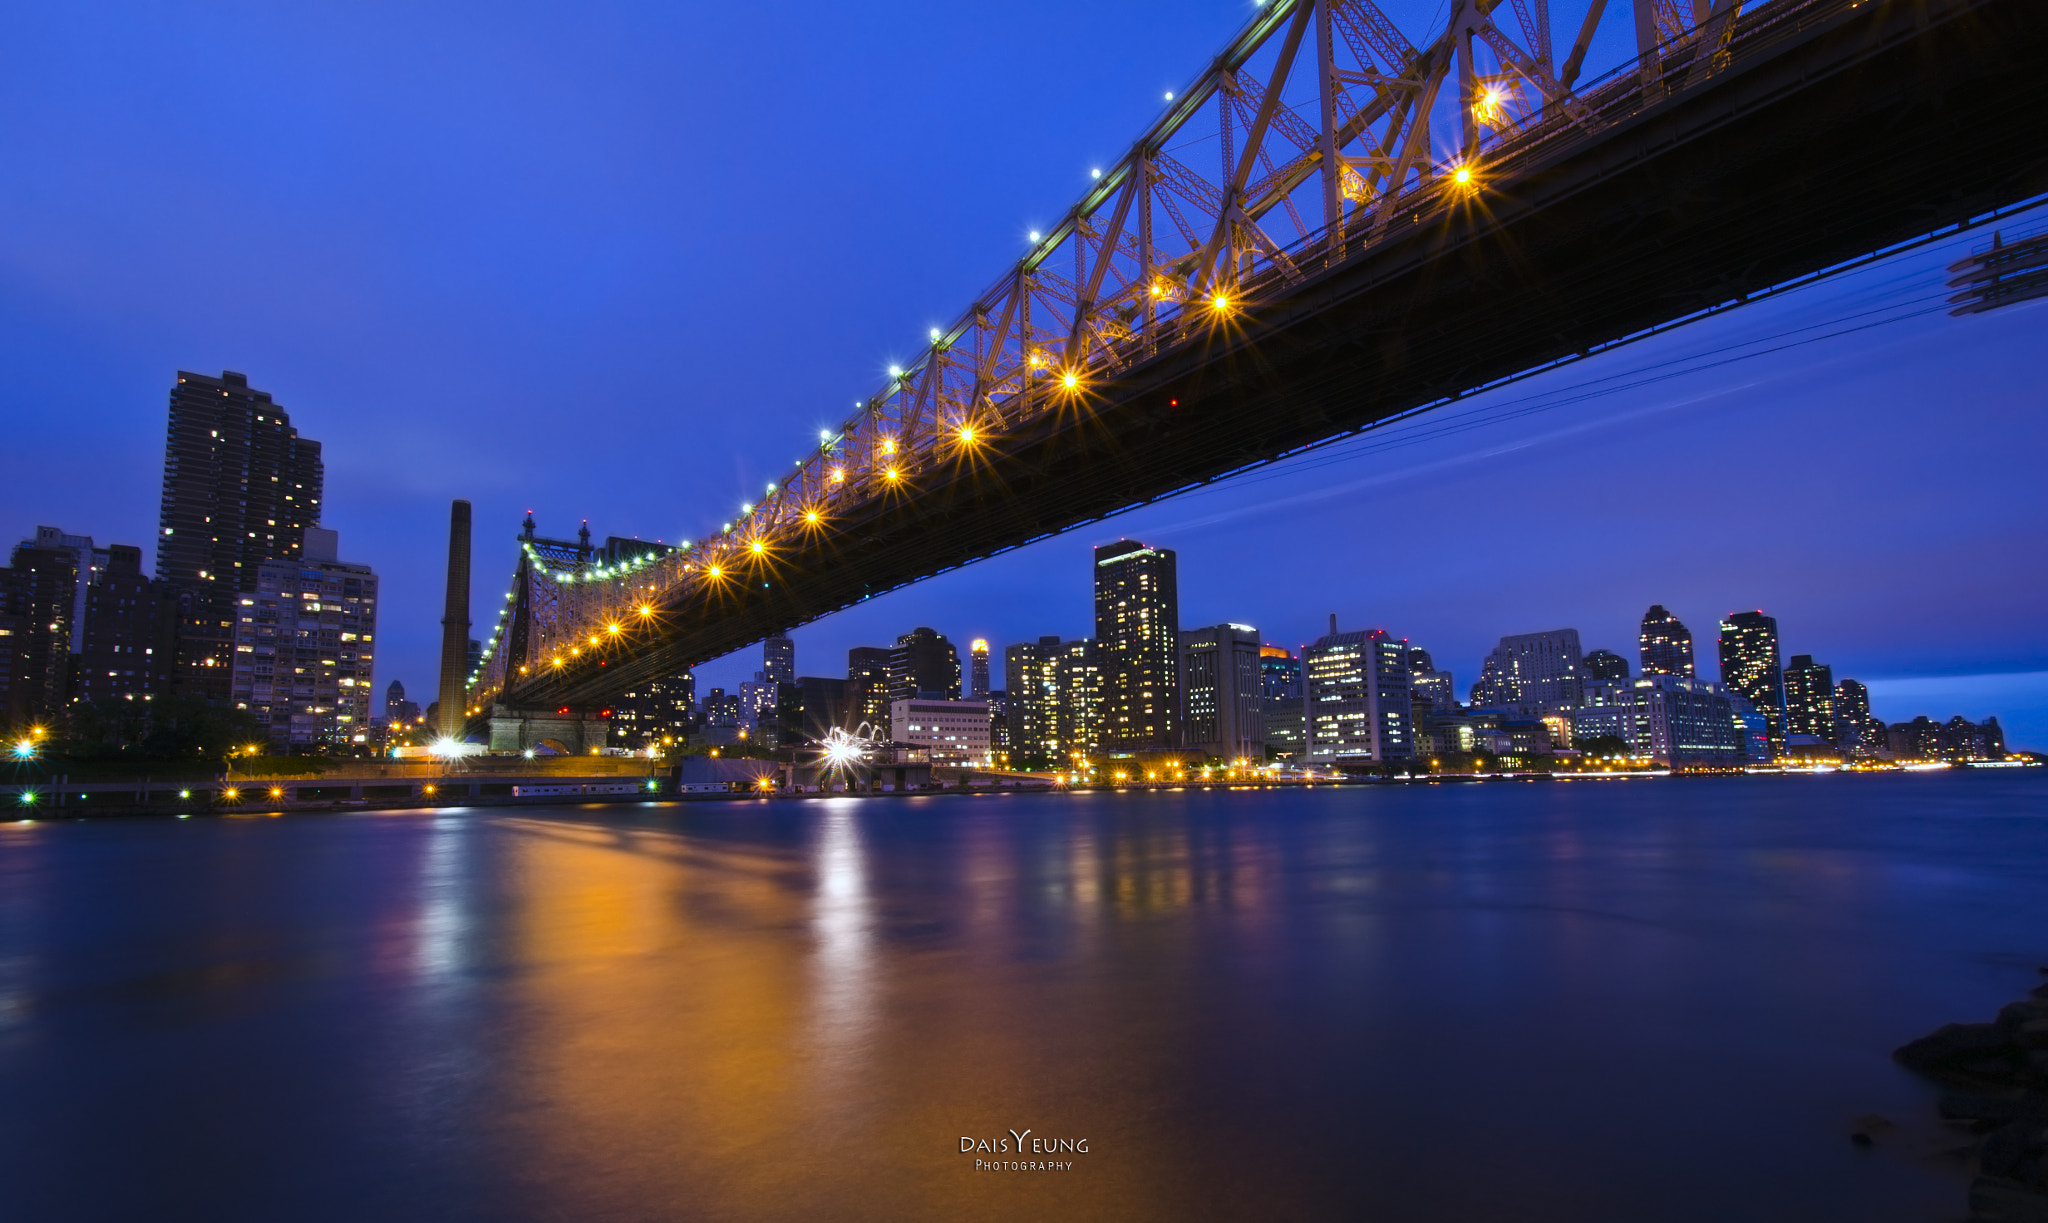 Photograph Ed Koch Queensboro Bridge at Night by Daisy Yeung on 500px